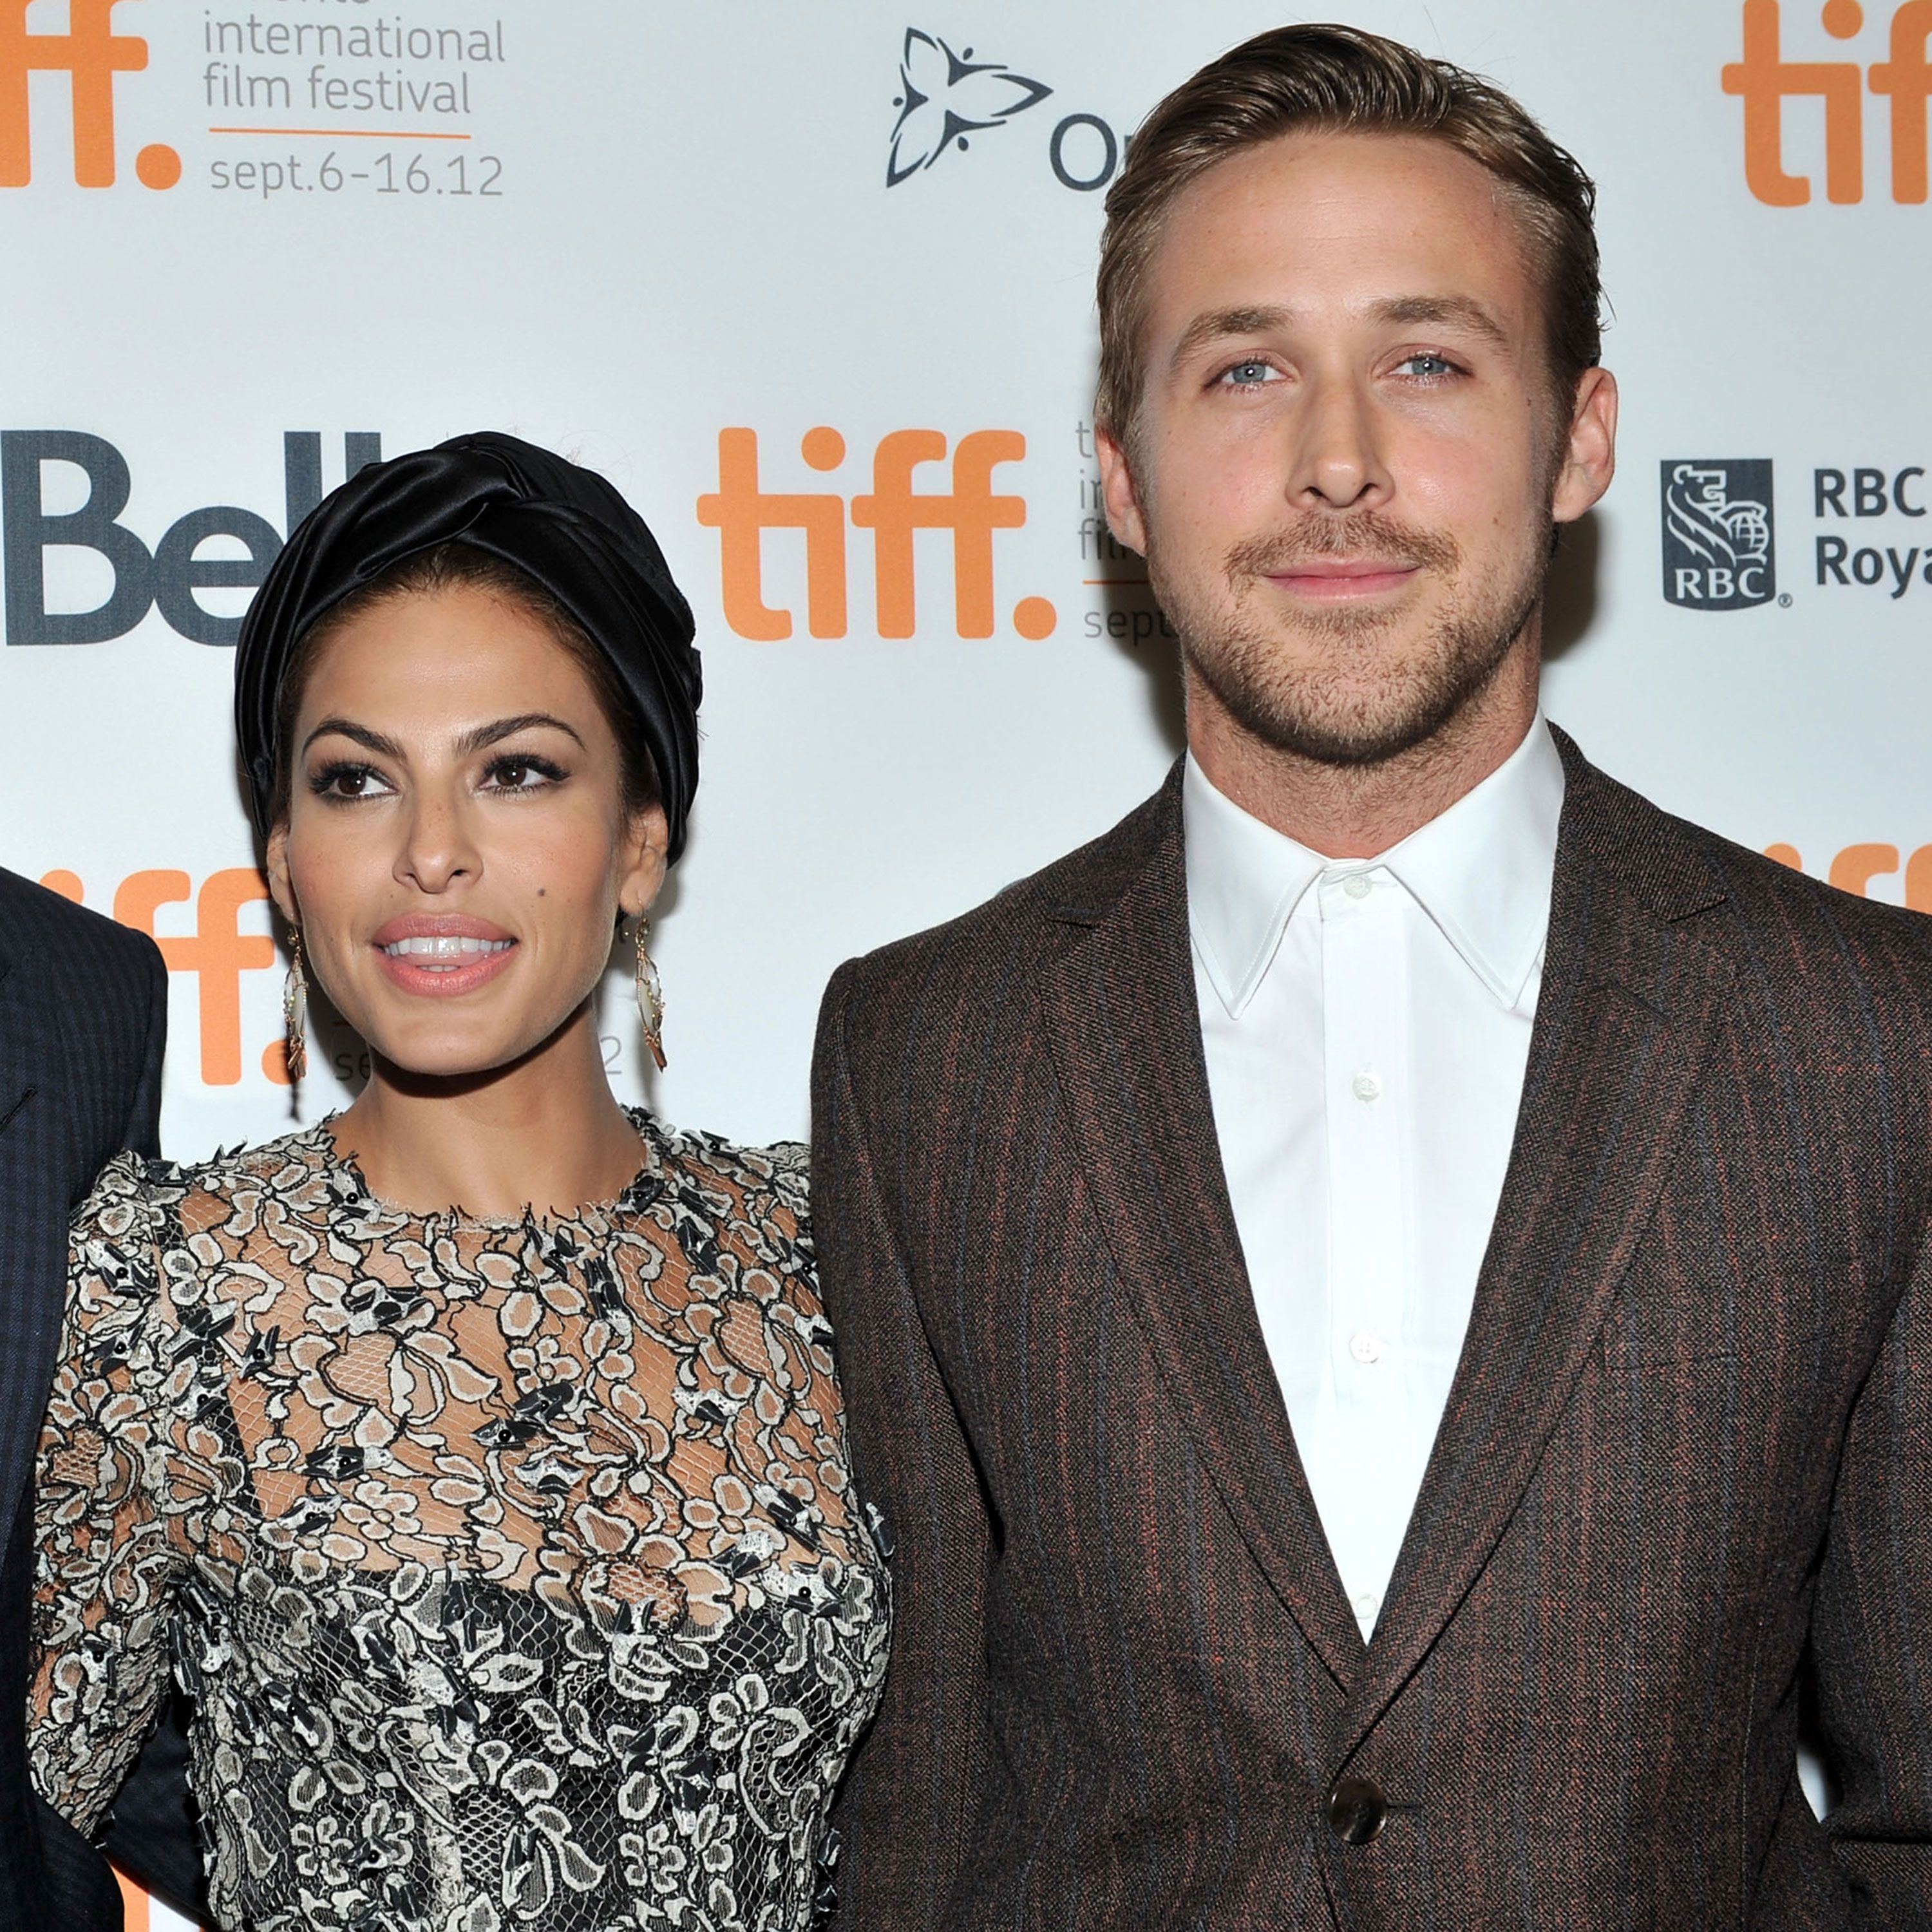 Eva Mendes says that falling in love with Ryan Gosling made her want to have children